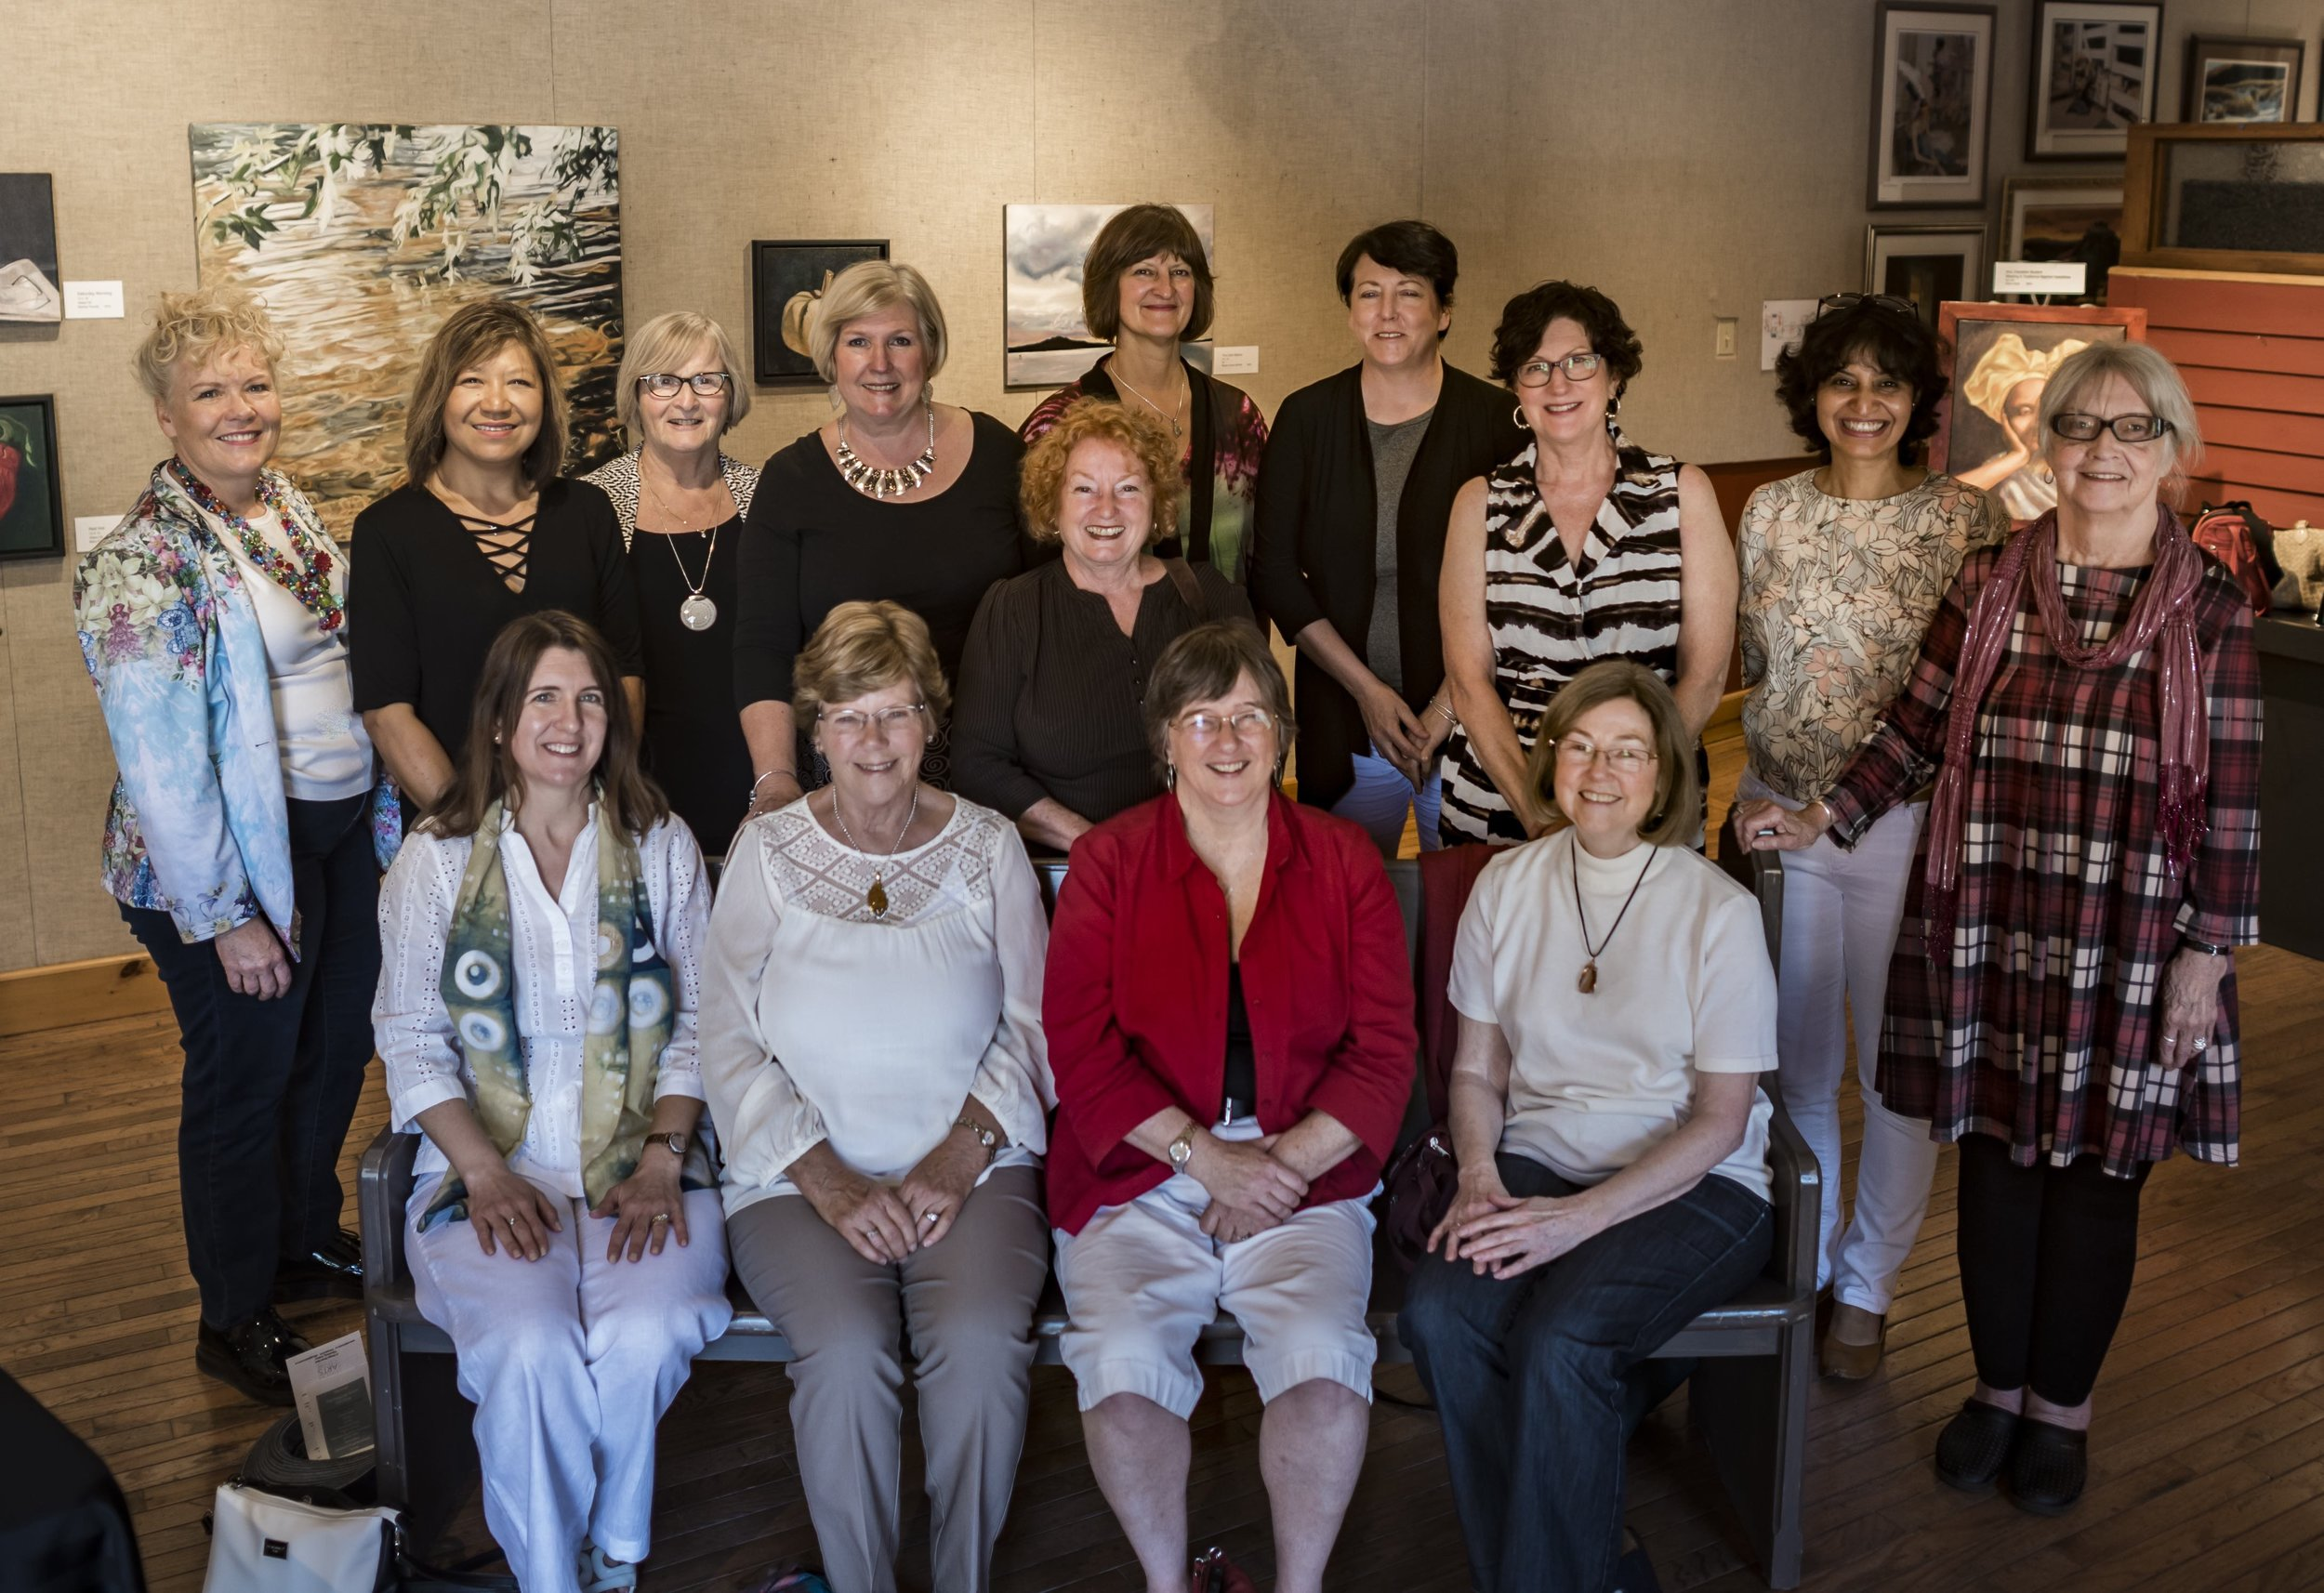 Here we are! Some of our founding members at the 2017 CGOS Inaugural Members' Exhibition at Tillsonburg Station Arts Centre in Tillsonburg, ON.  Back Row: Cathy Griggs, Marilyn Rosati, Pat Welch, Cathy Roberts, Adriana Rinaldi, Louise Doyle, Cindy Steinke, Meru Chowduri Parmar, Eileen Sakal, Front Row: Vanessa Cress Lokos, Isabel Haslam, Kathy Marlene Bailey, Sylvia Horvath.